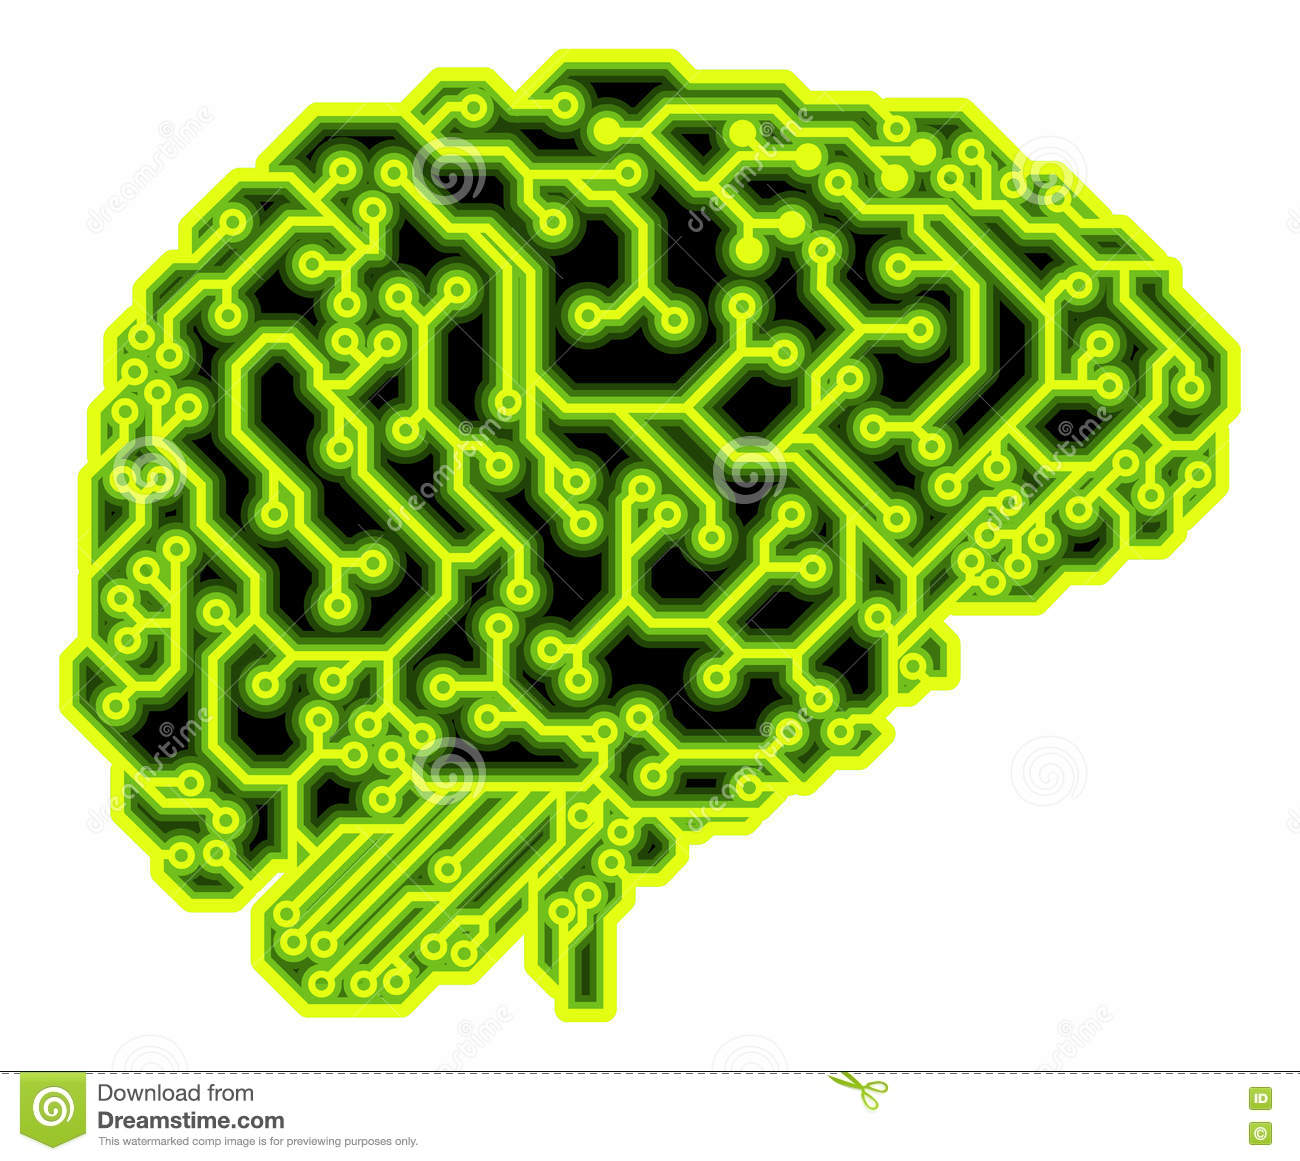 Circuit Brain Reusable : Brain circuit concept stock vector image of glowing